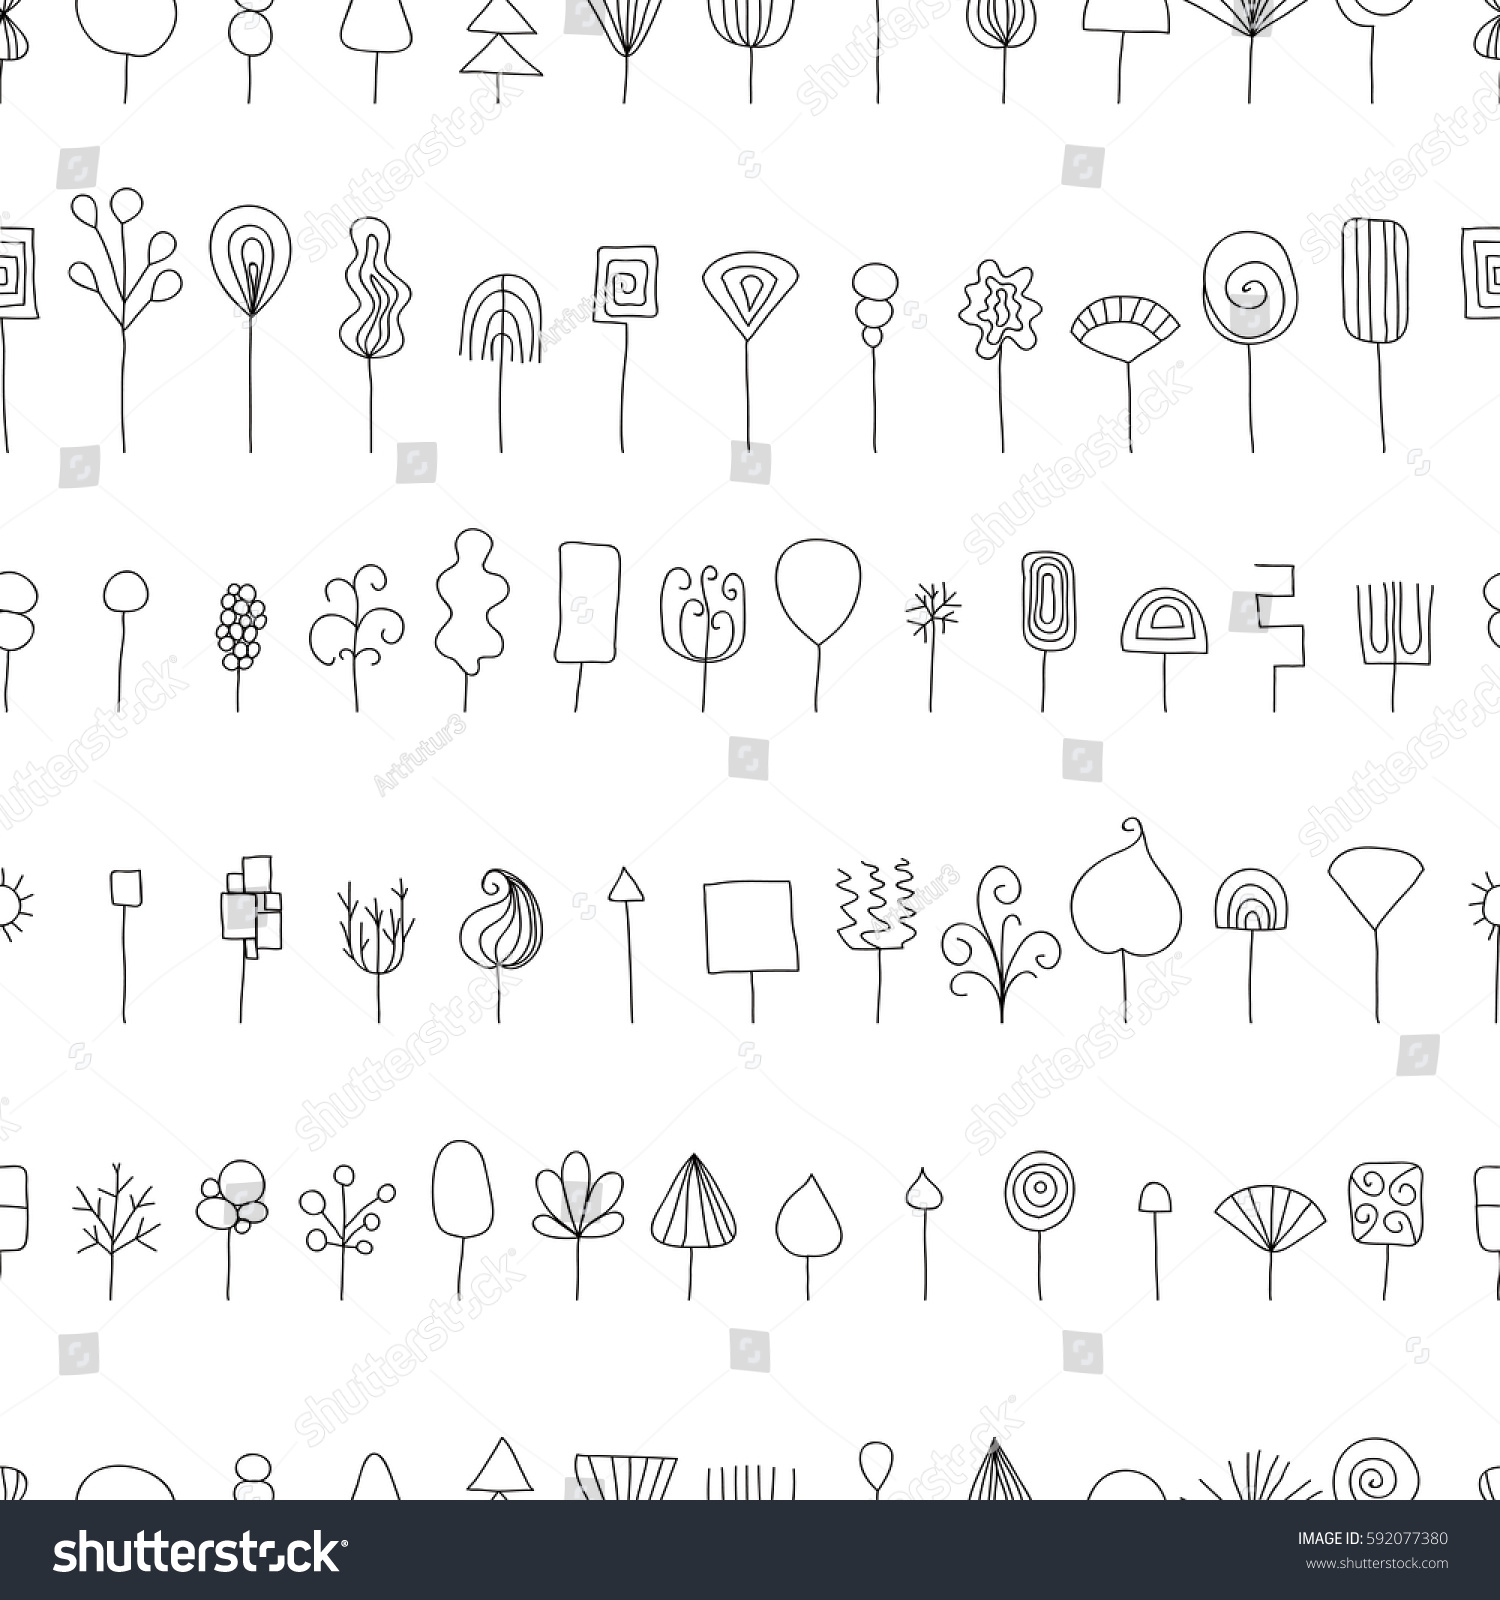 Abstract Trees Hand Drawn Seamless Pattern Stock Vector 592077380 - Shutterstock